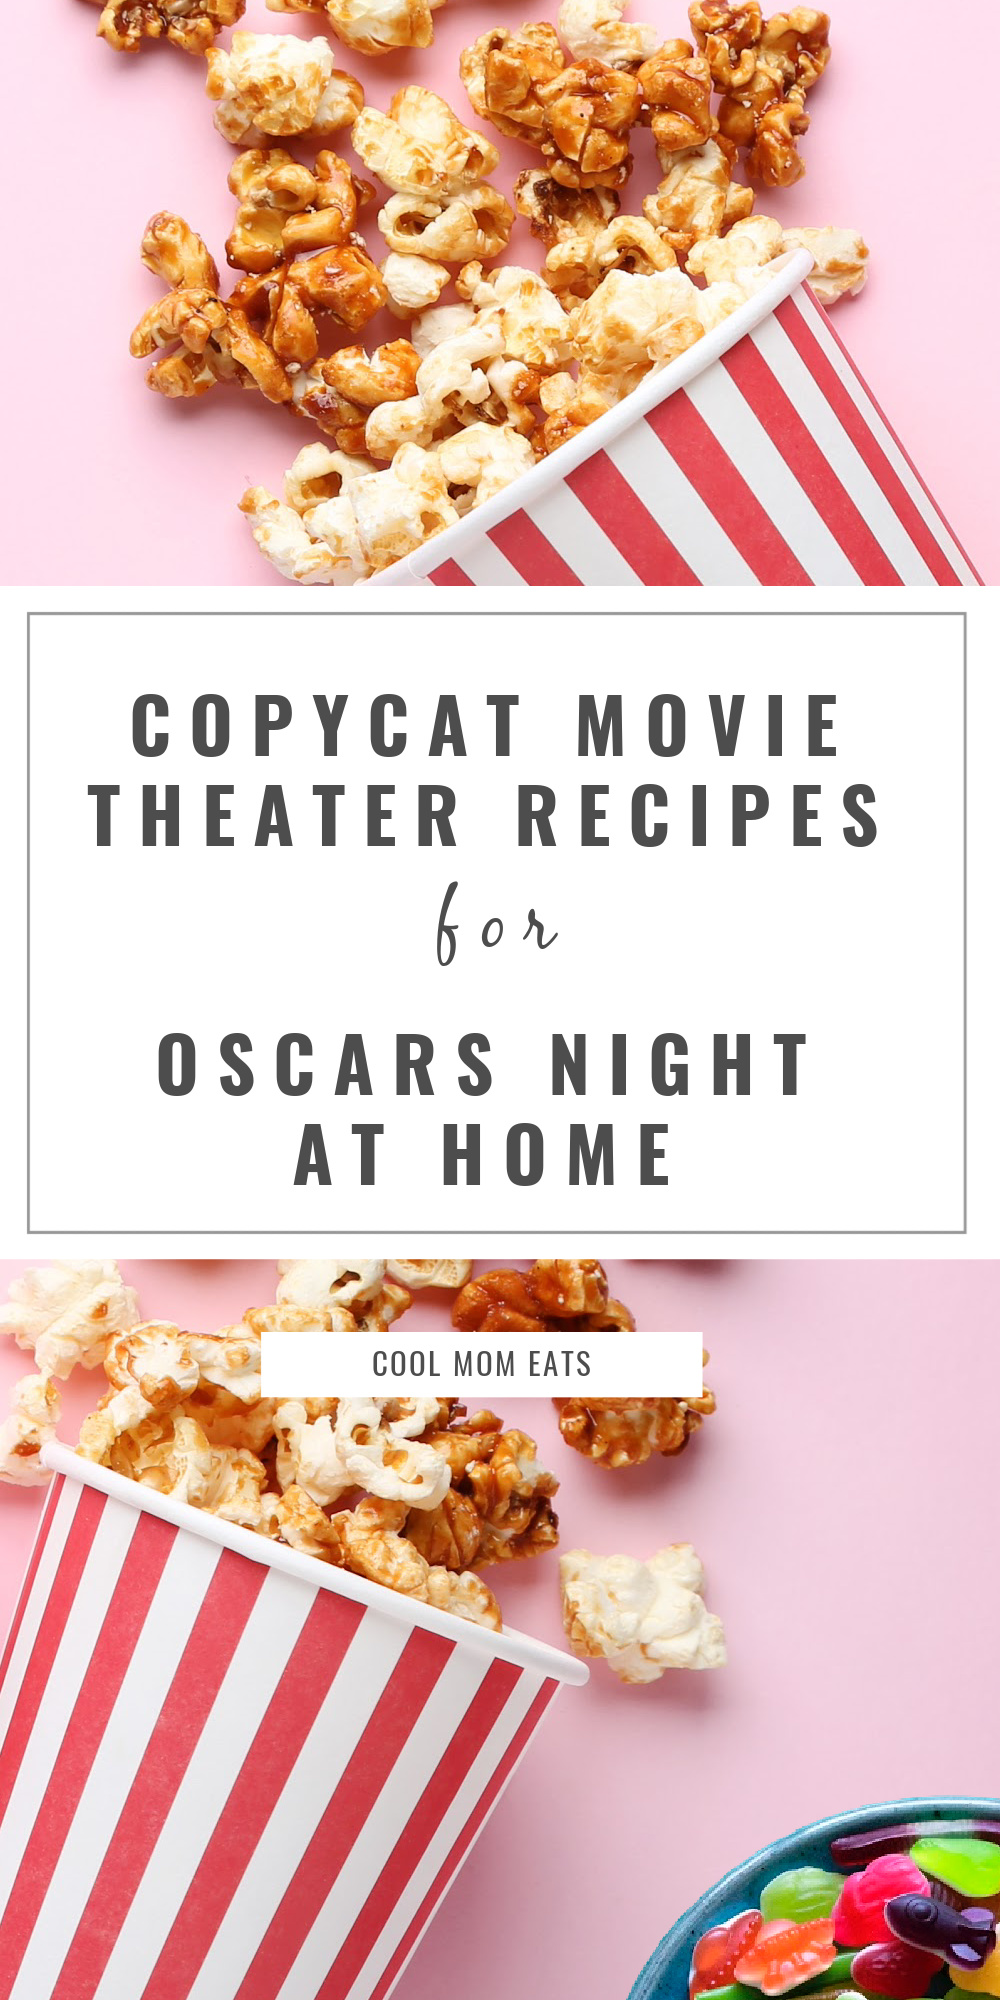 Copycat movie theater candy and treat recipes on Cool Mom Eats help make Oscars night or family movie watching more fun!